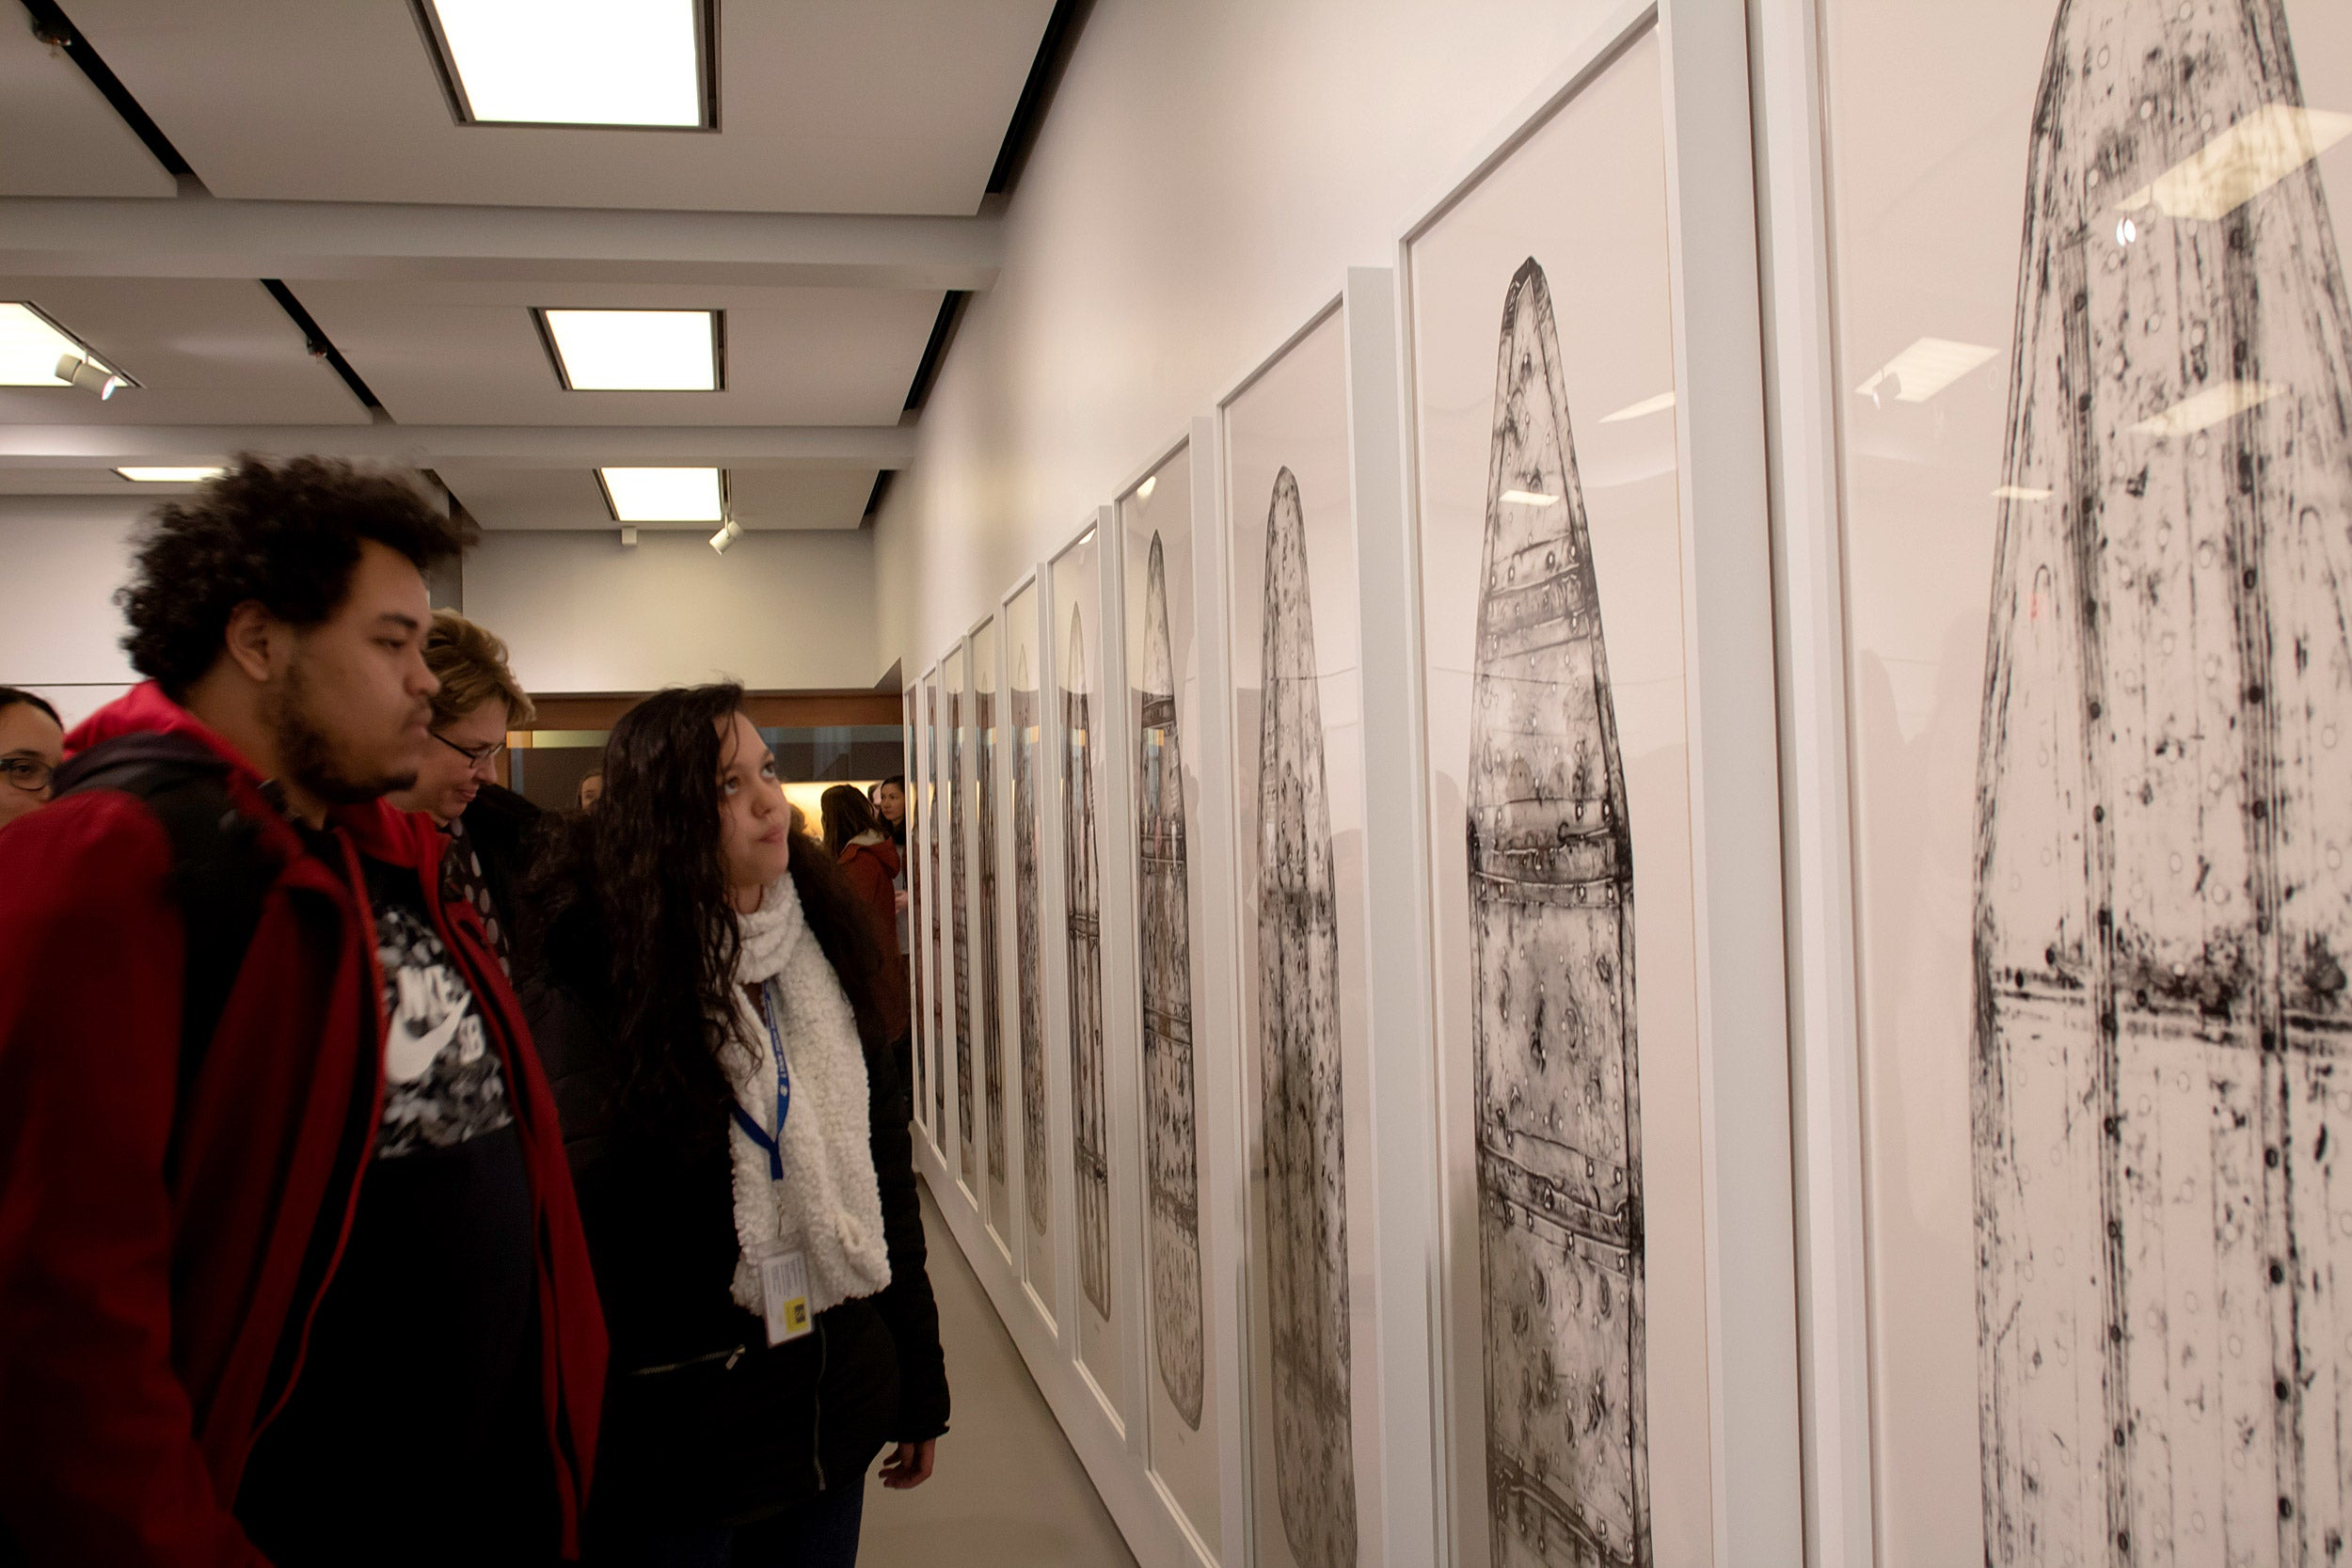 Noel Pichardo and Jasmin De La Cruz view the exhibit.